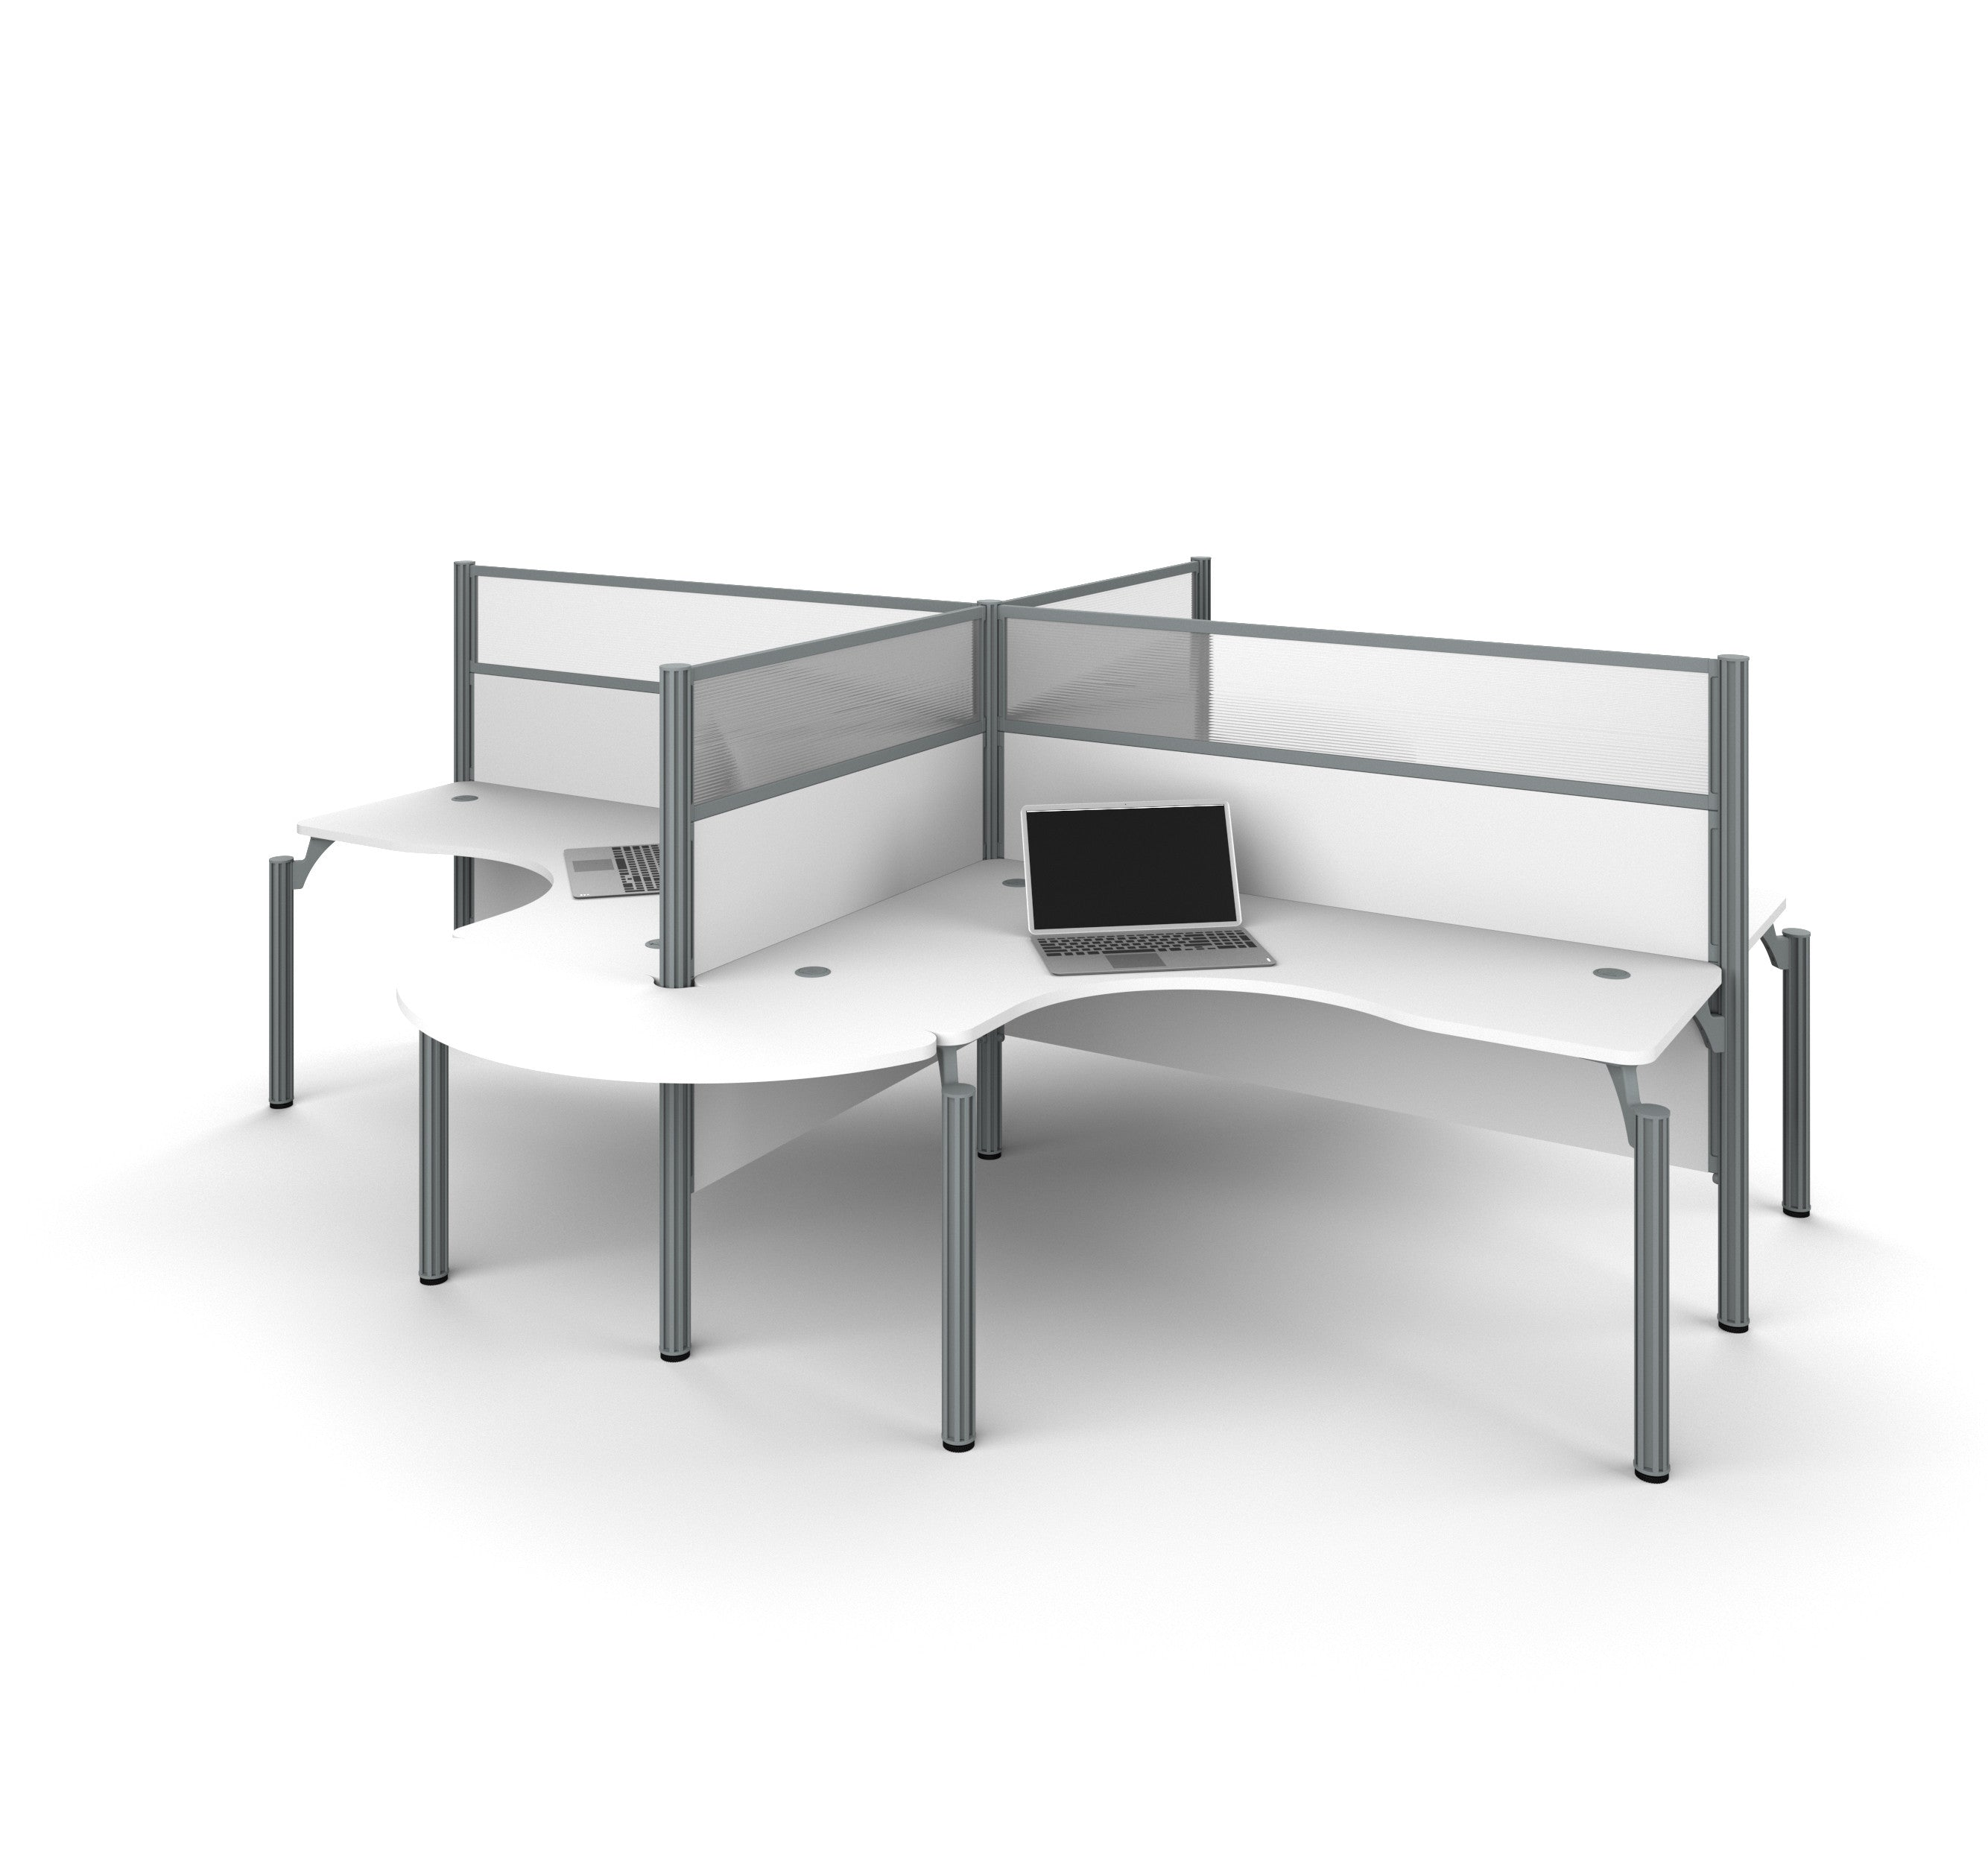 "Pro-Biz Quad Desk in White with Rounded Edges & 55"" Privacy Panels"